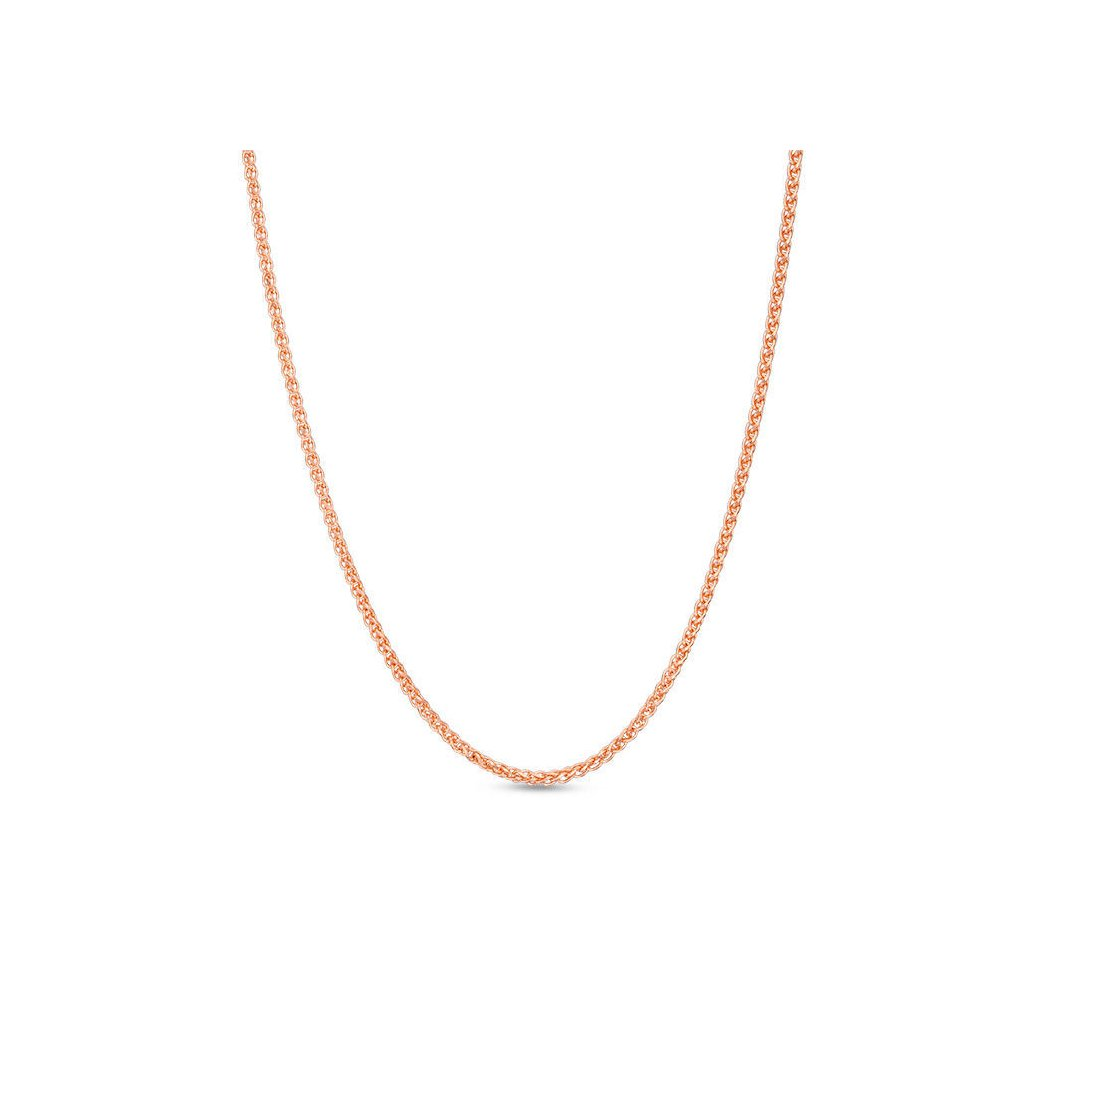 "1.2MM 030 Rose Gold Wheat/Spiga Chain .925 Sterling Silver Length ""7-24"" Inches"